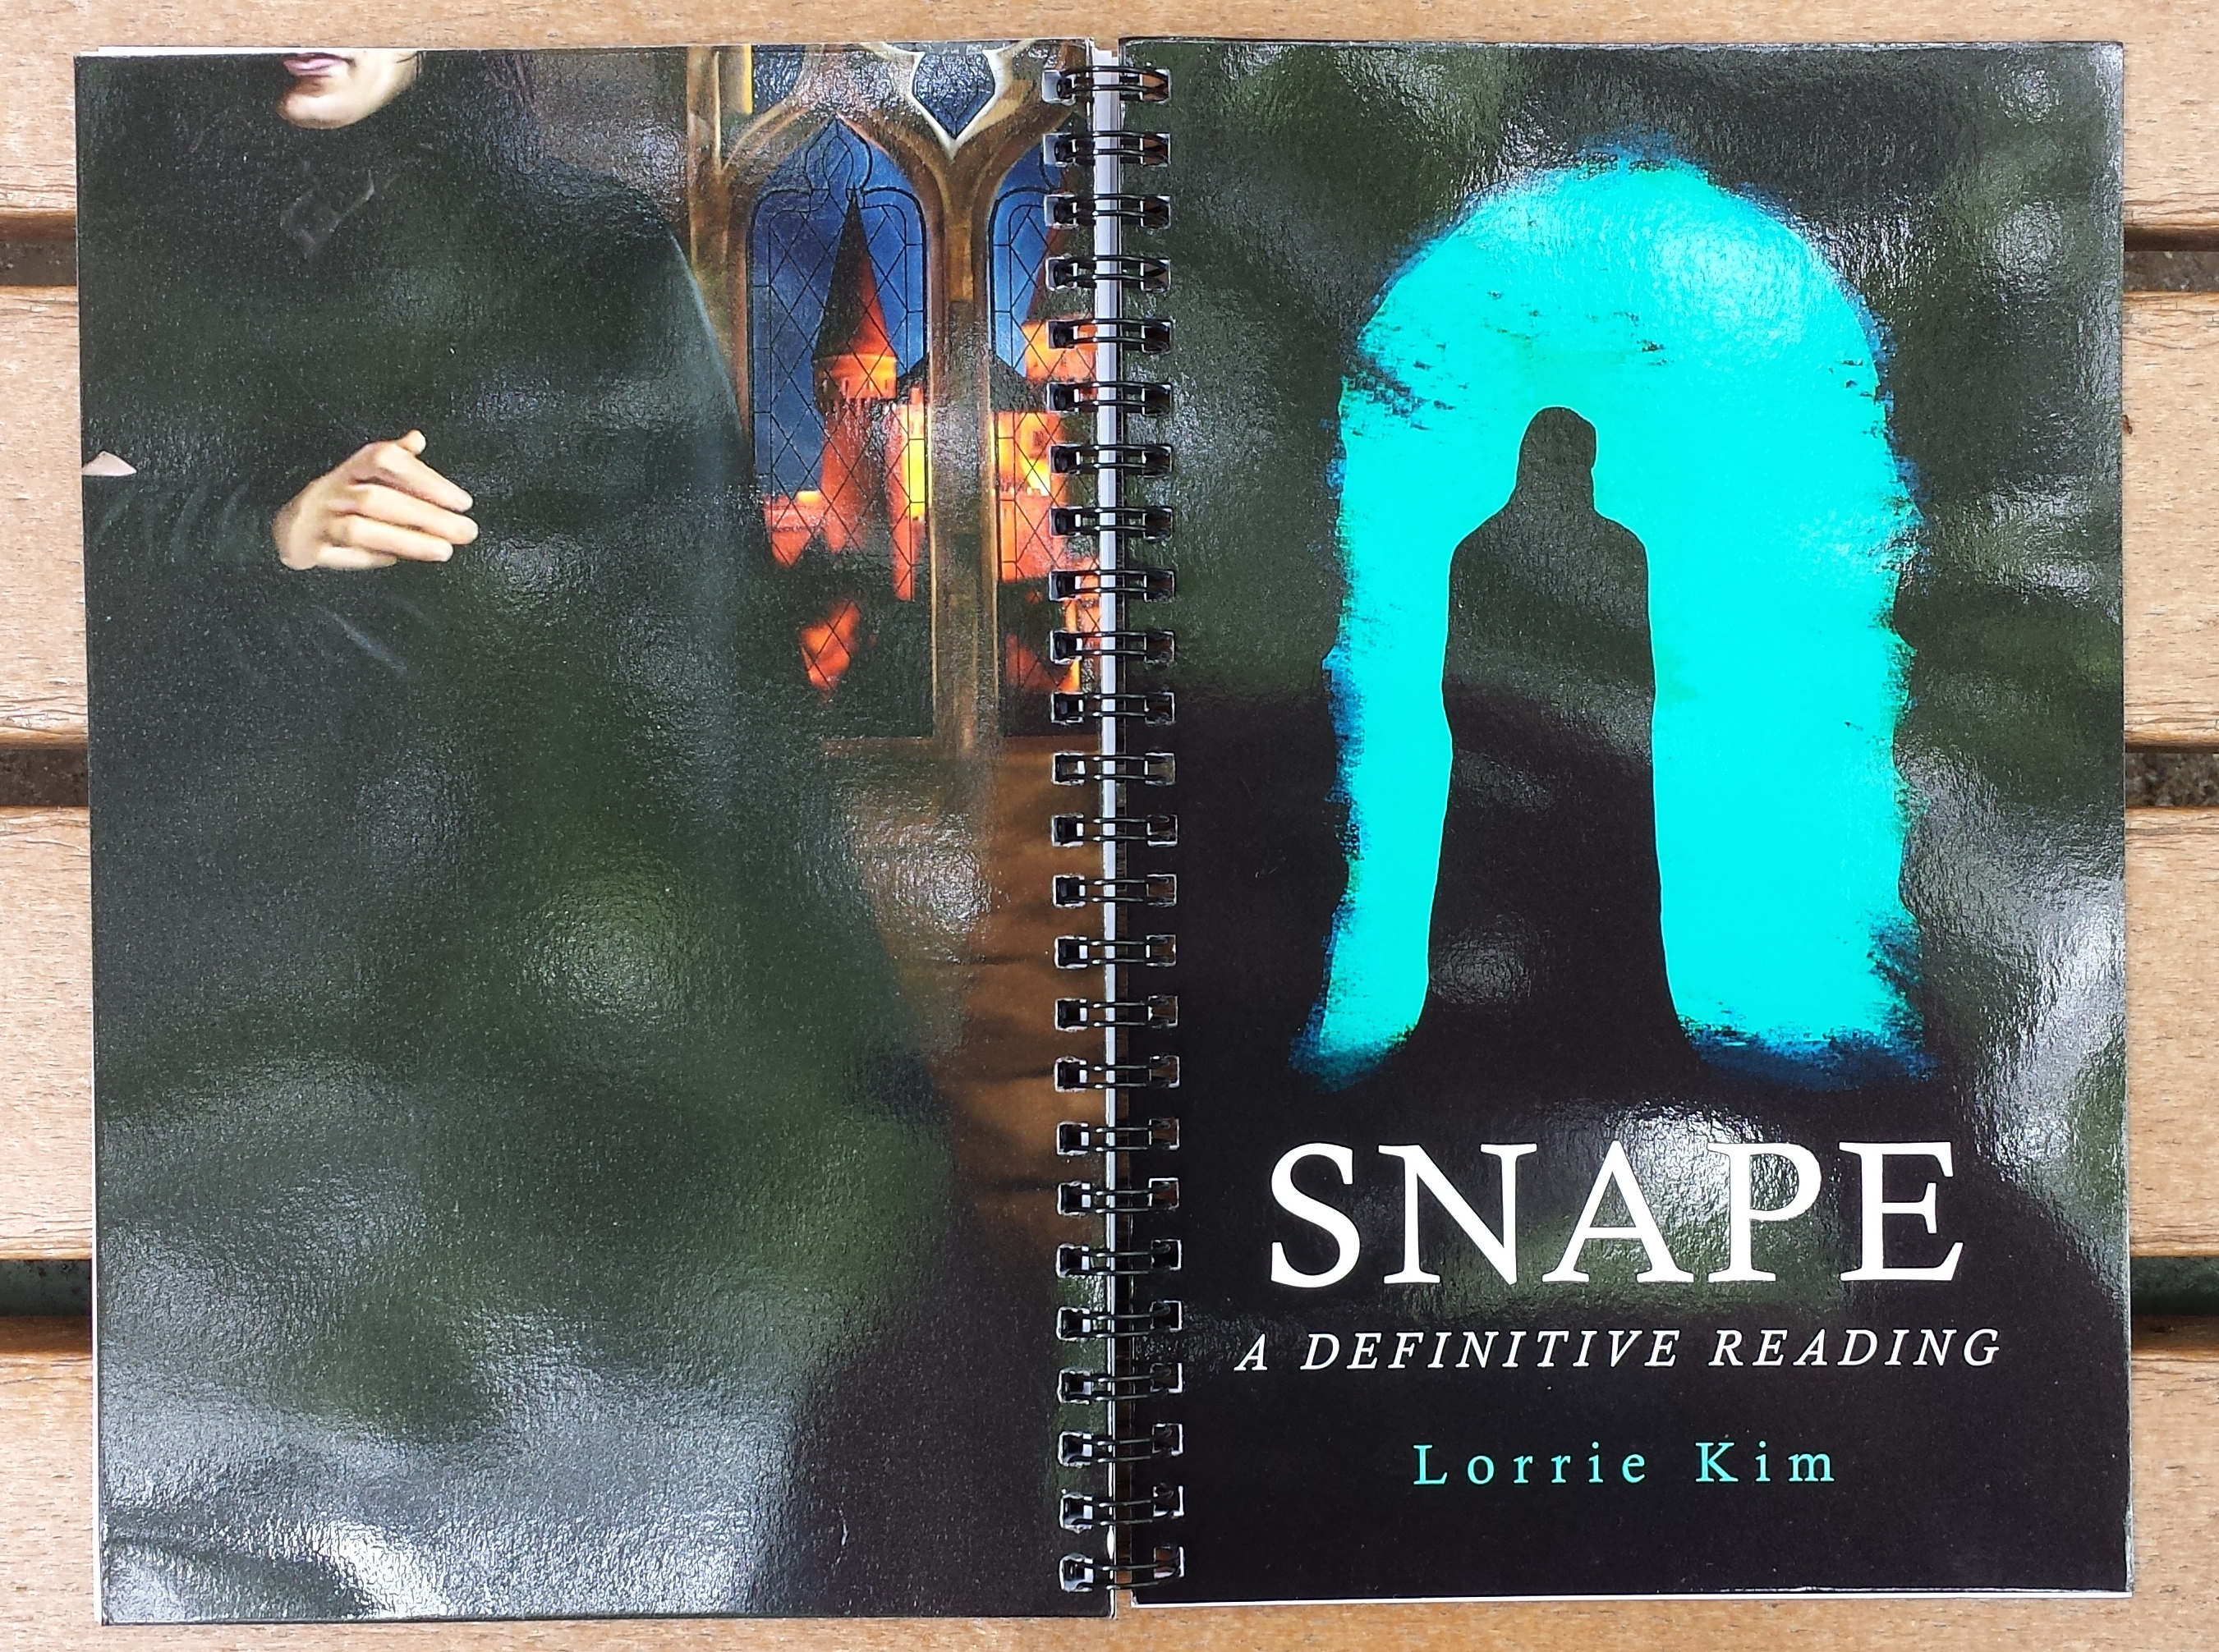 snape notebook front and back